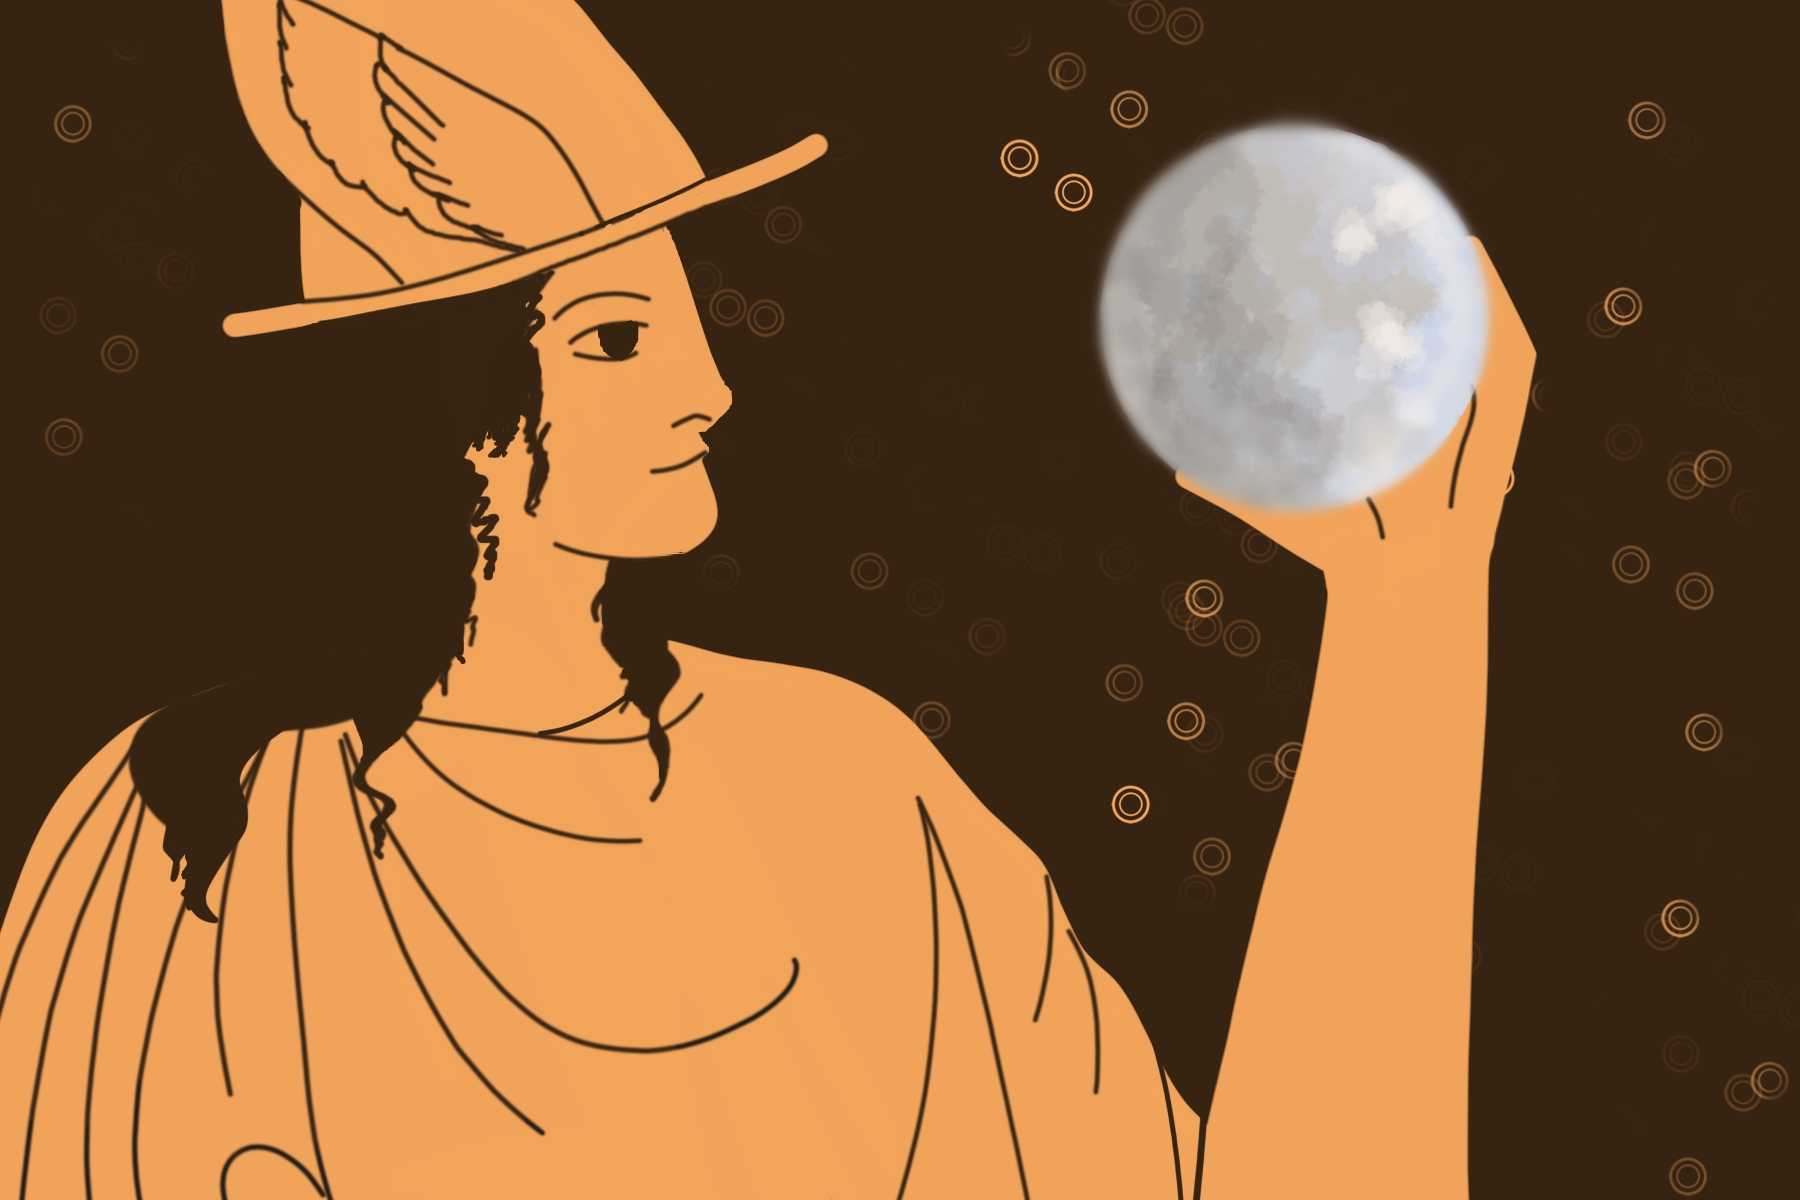 In an article about Mercury retrograde, an illustration of the Greek god Hermes holding up the planet Mercury